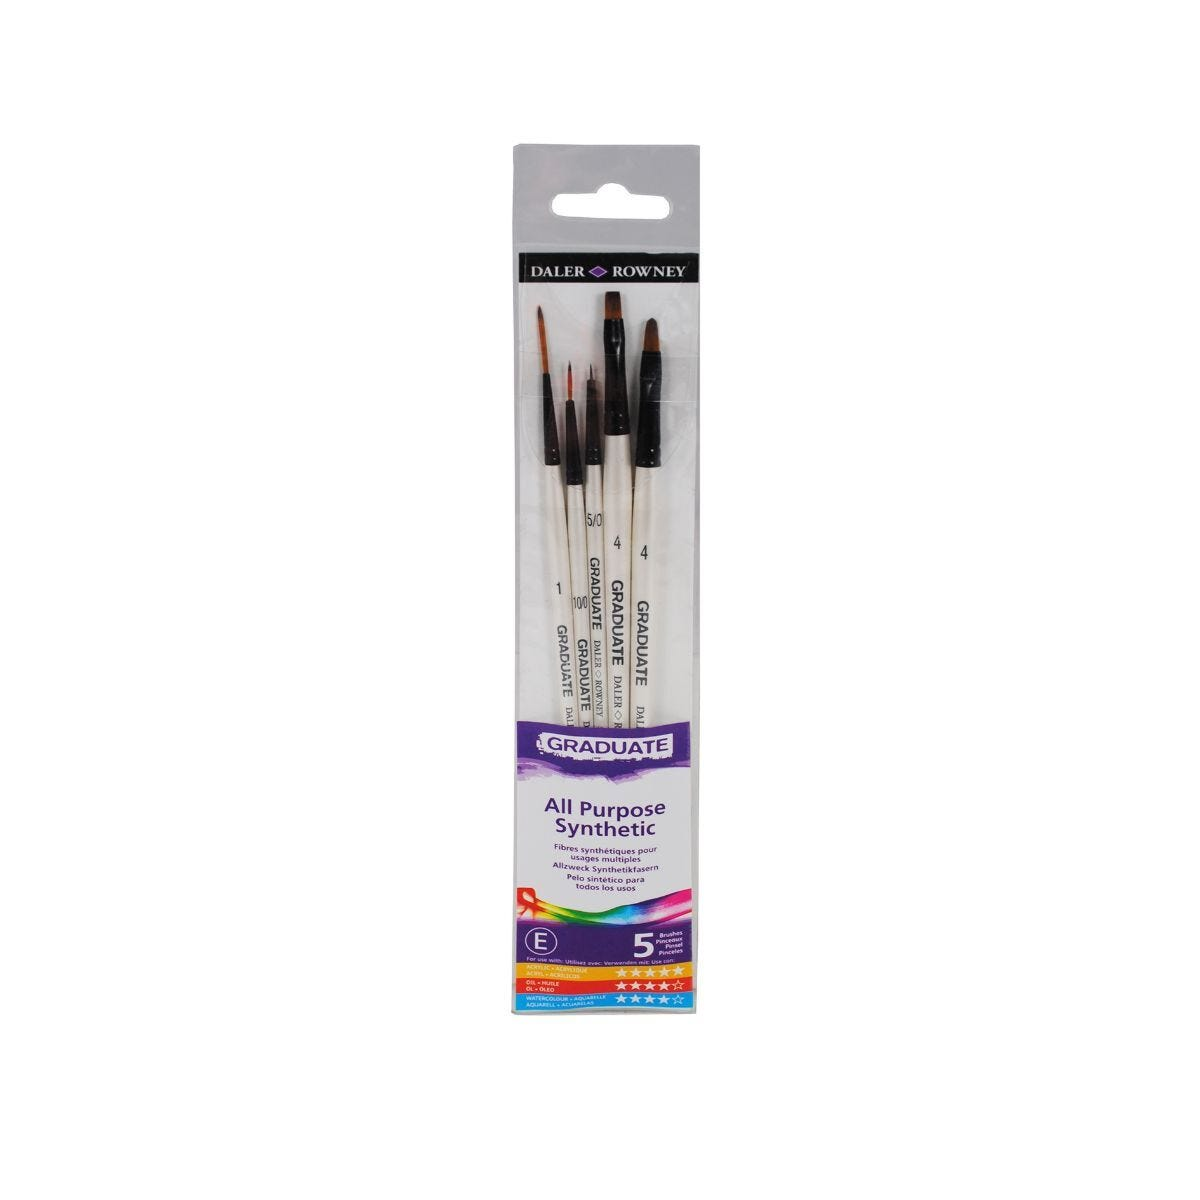 Daler Rowney Graduate Brush Set Pack of 5